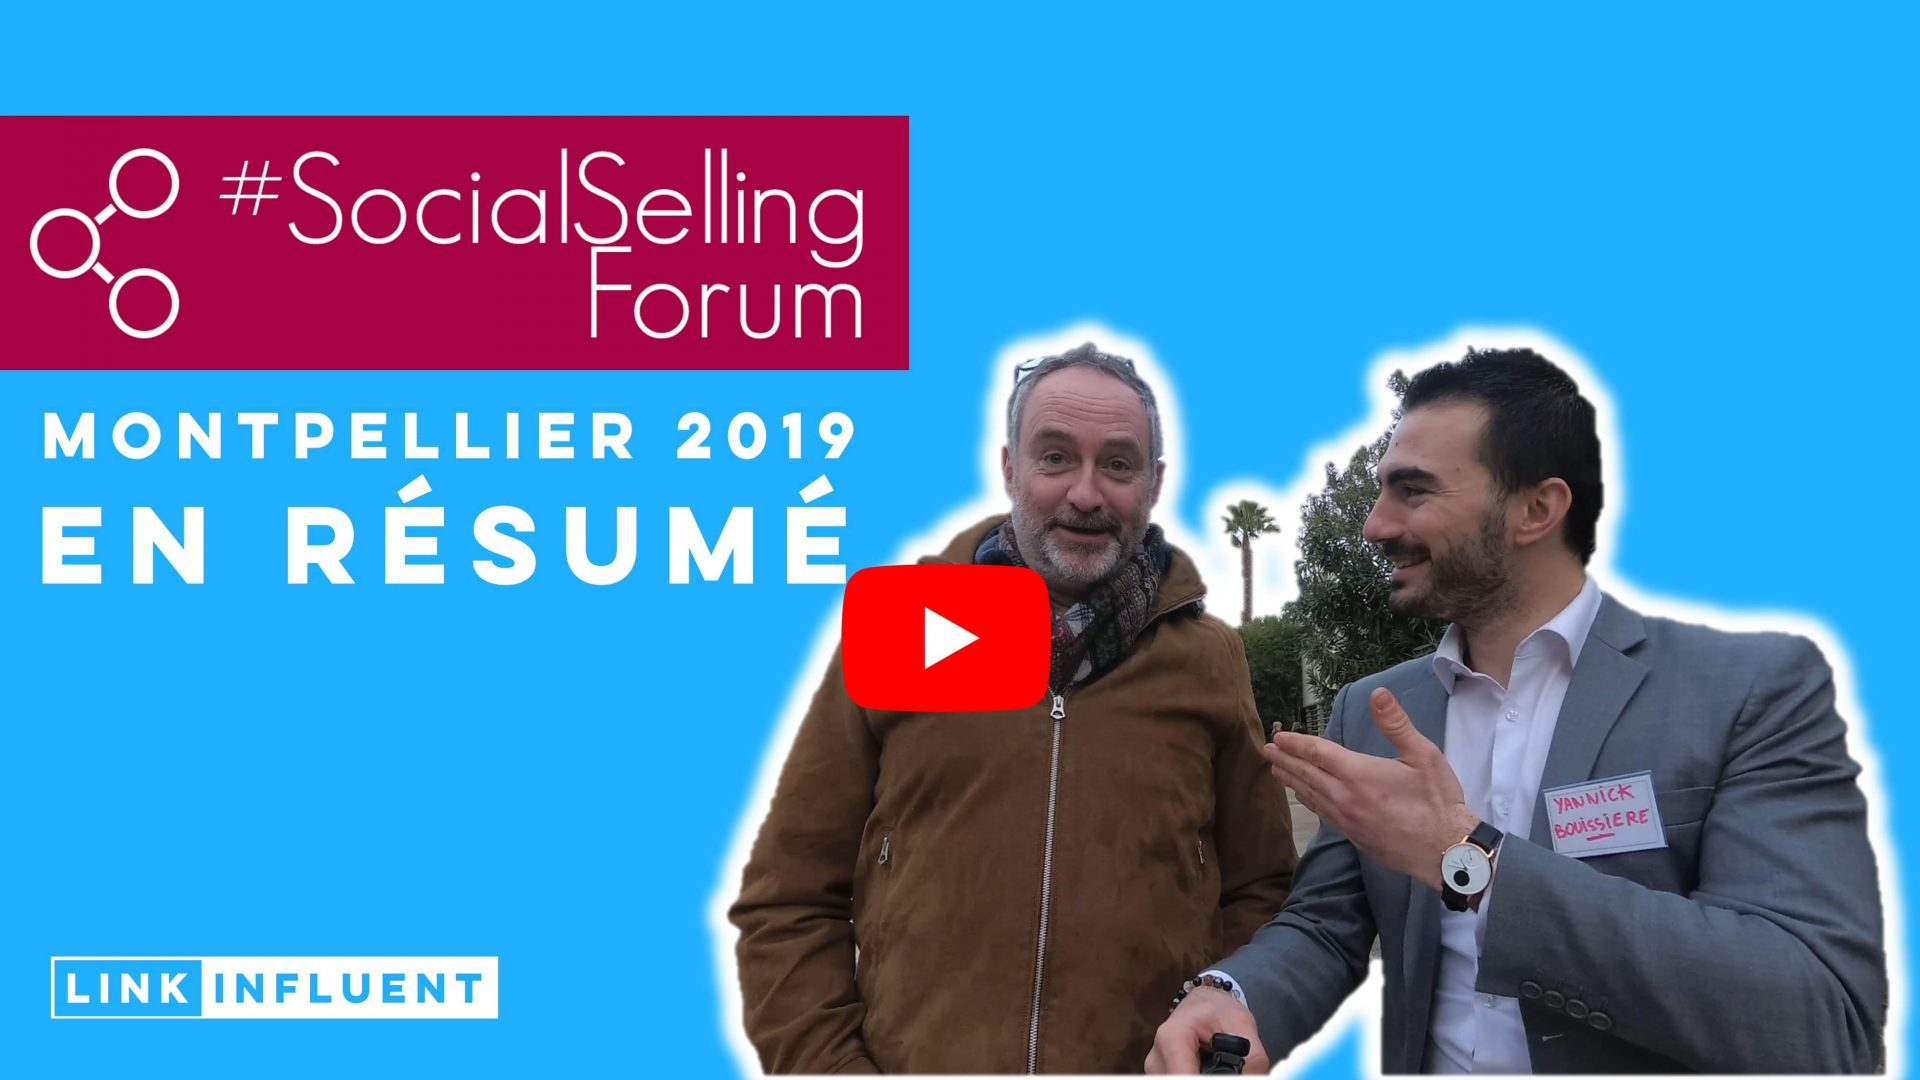 Social Selling Forum Montpellier 2019 - Video Linkinfluent